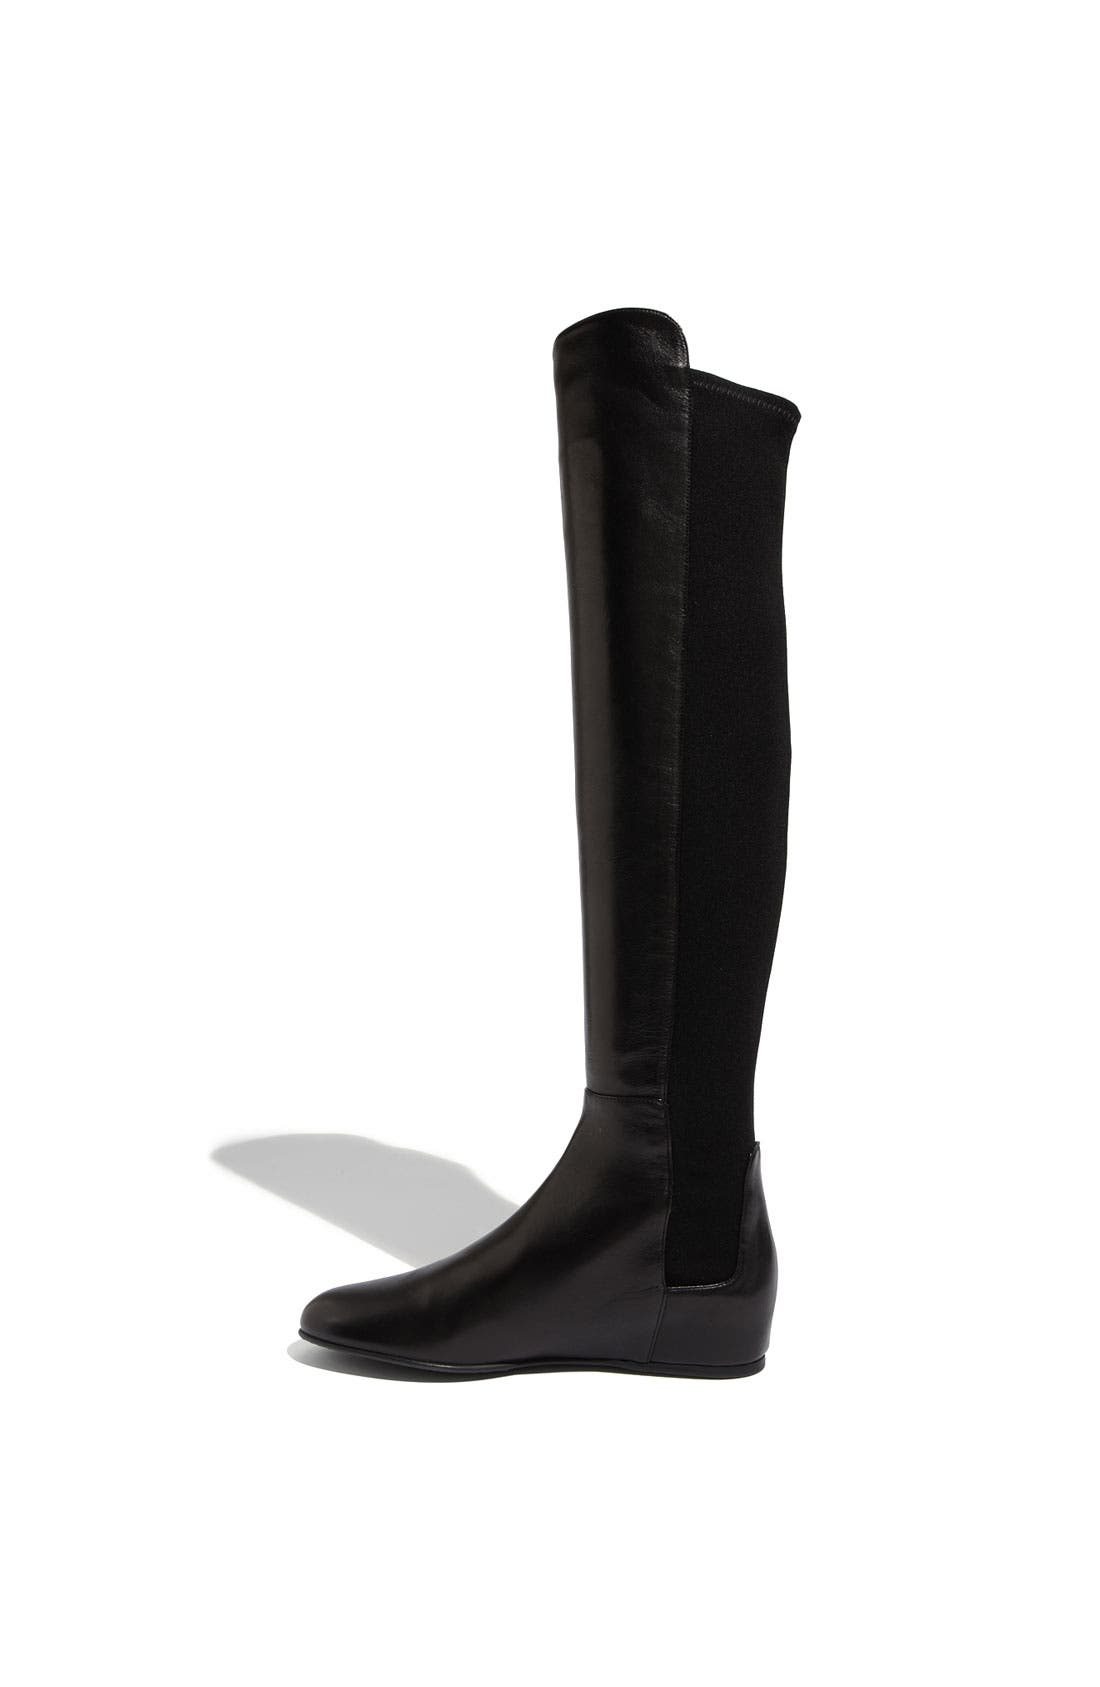 STUART WEITZMAN, 'Mainline' Stretch Fabric & Nappa Leather Over the Knee Boot, Alternate thumbnail 4, color, 002